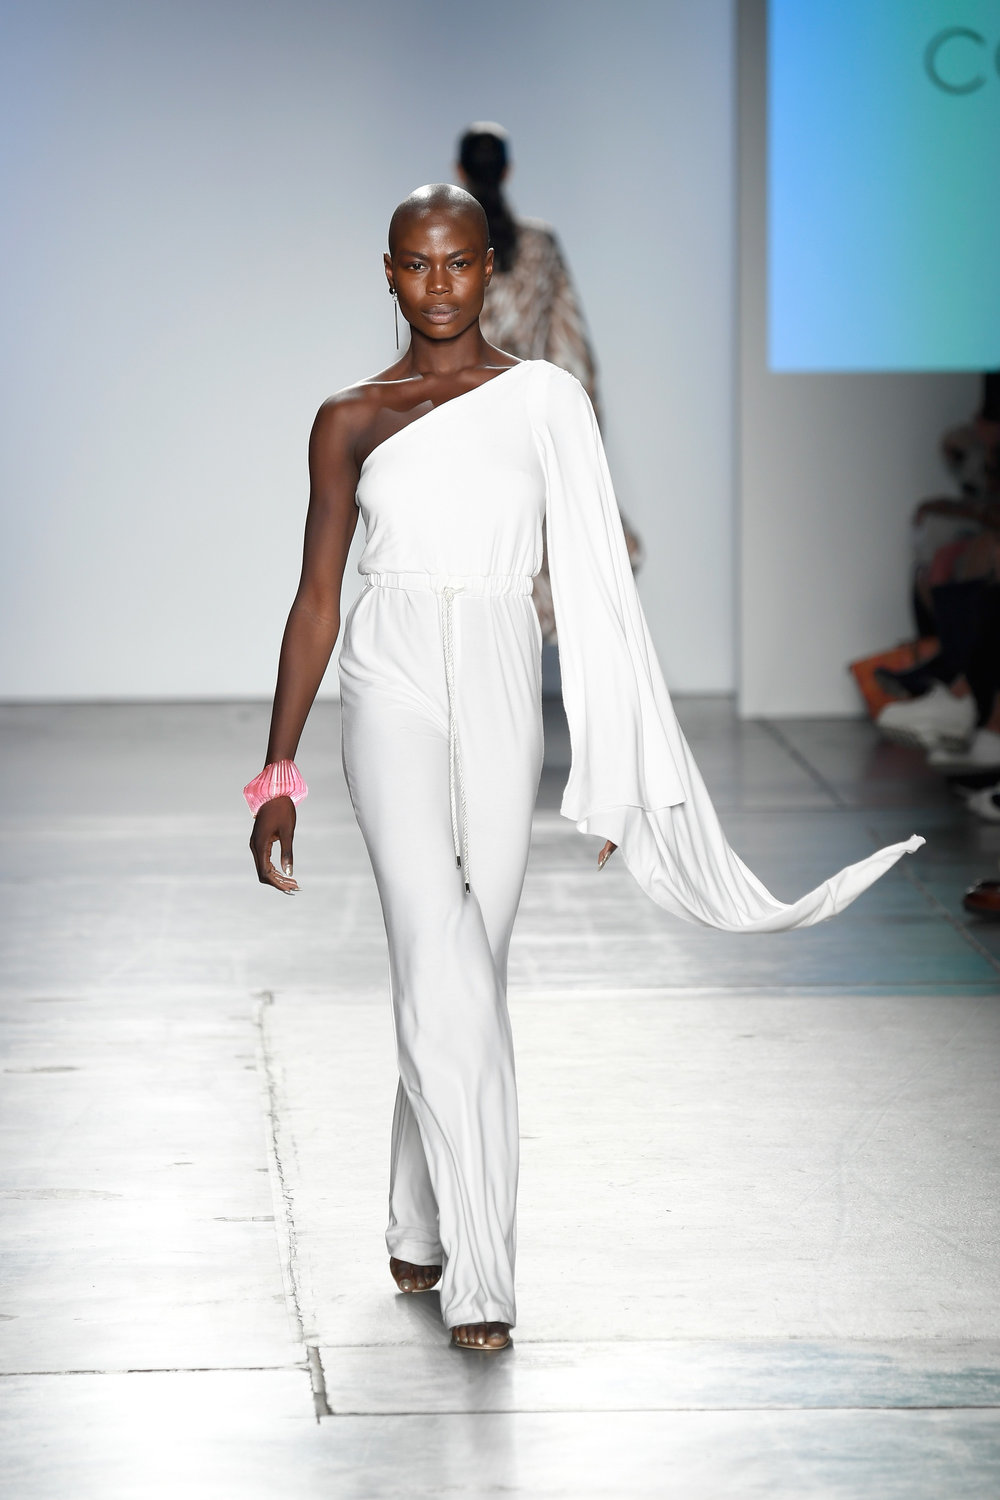 Look 4 by Carlton Jones Photo by Arun Nevader for Getty Images.jpg